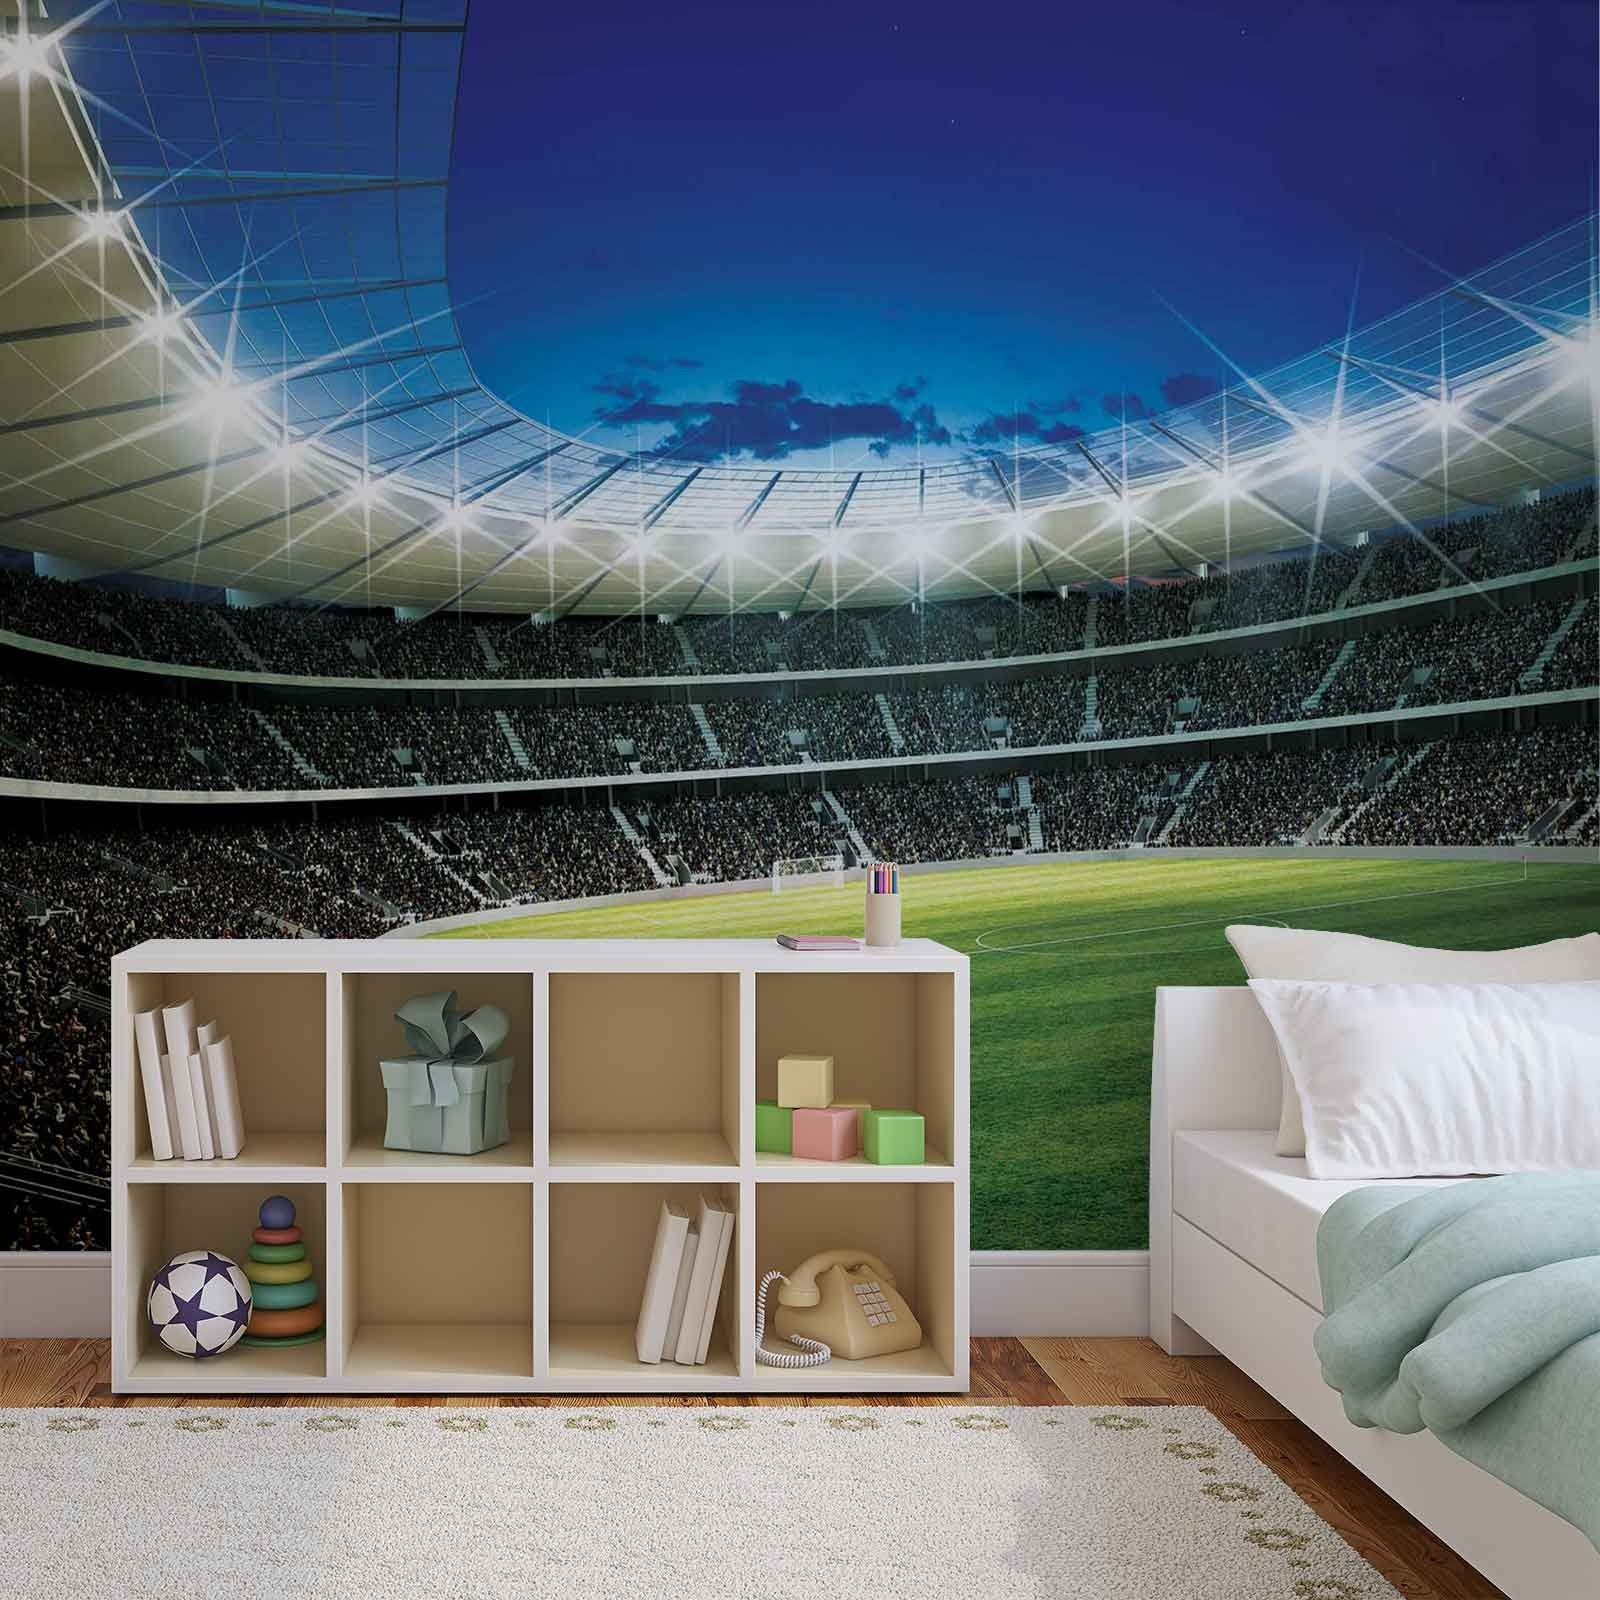 Giant size wall mural wallpapers football stadium homewallmurals giant non woven wallpaper mural football stadium 323 amipublicfo Images